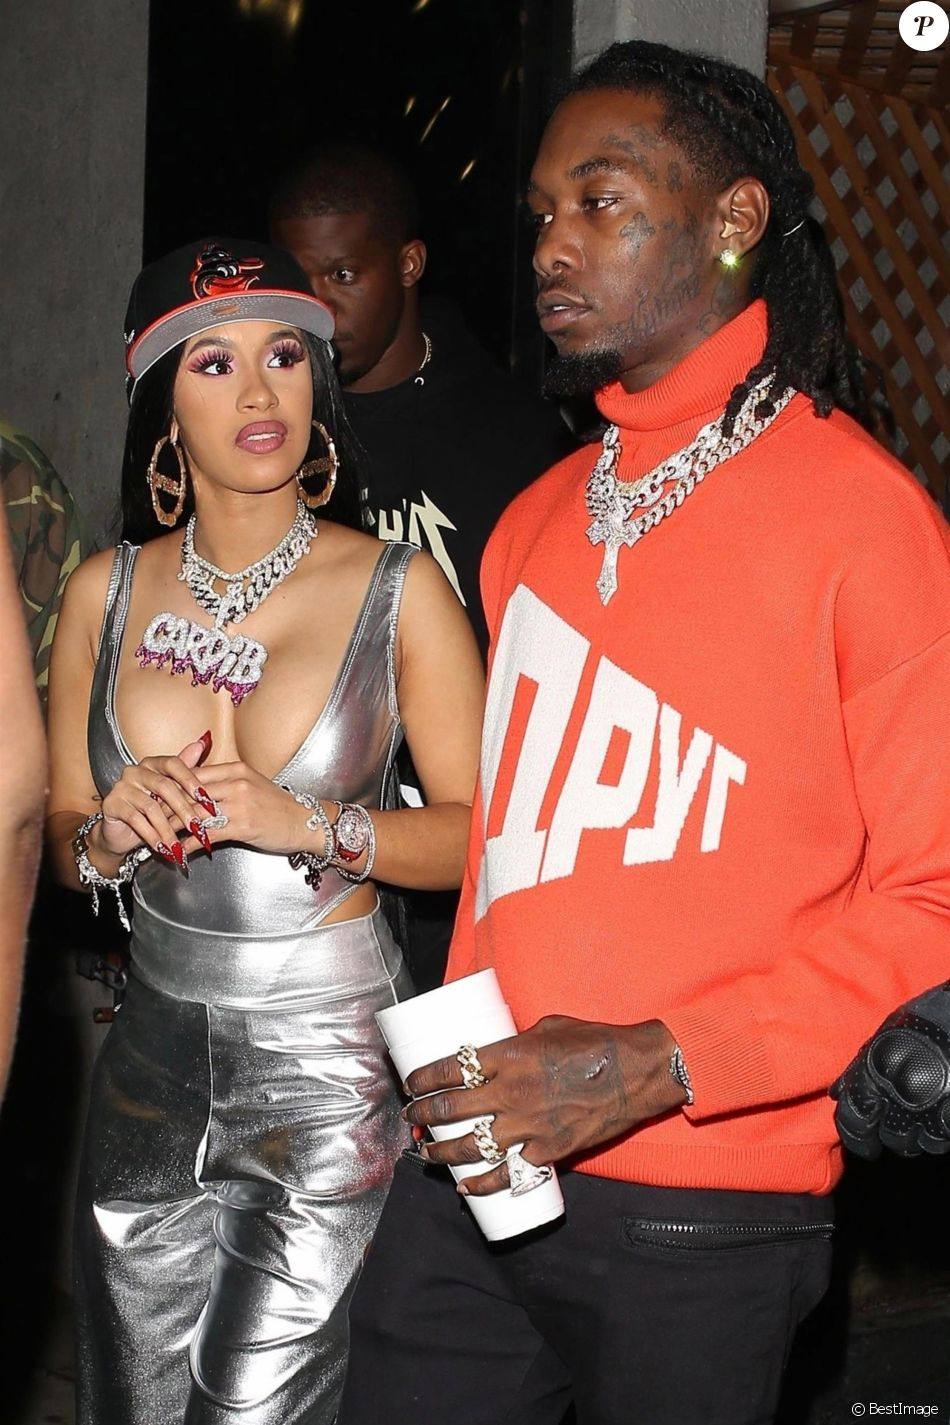 Cardi B et son compagnon Offset sont allés faire la fête au Argyle night club après le concert de Drake au Staple Center à Los Angeles, le 14 octobre 2018  Cardi B and Offset continue her birthday celebrations at the Argyle night club after Drake's concert at the Staple Center. Cardi rocks some serious bling with her name on her necklace and flaunted her curves in a silver low cut top. 14th october 201814/10/2018 - Los Angeles